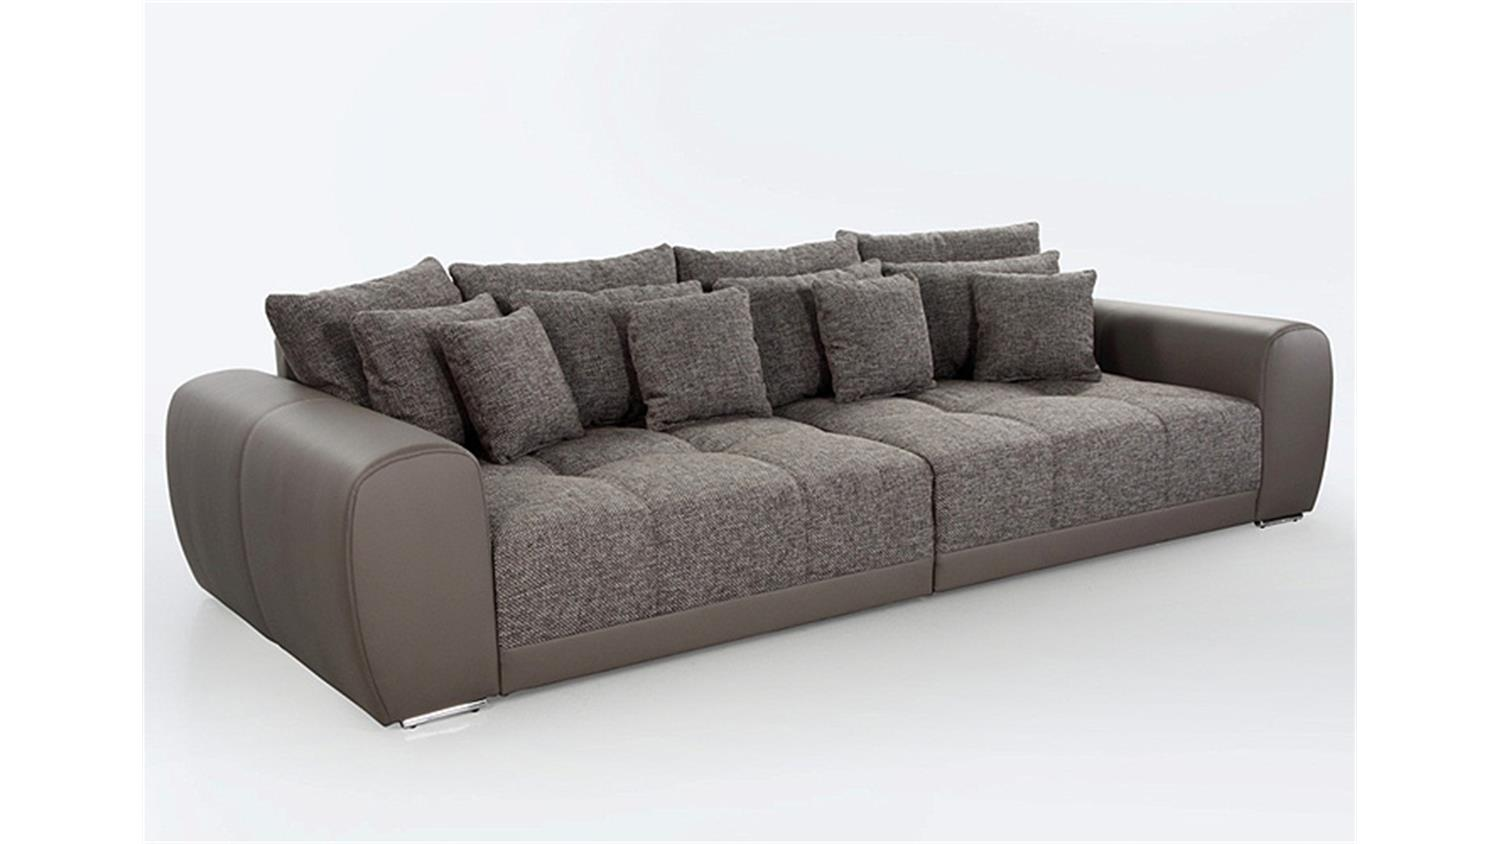 big sofa xxl leder innenr ume und m bel ideen. Black Bedroom Furniture Sets. Home Design Ideas